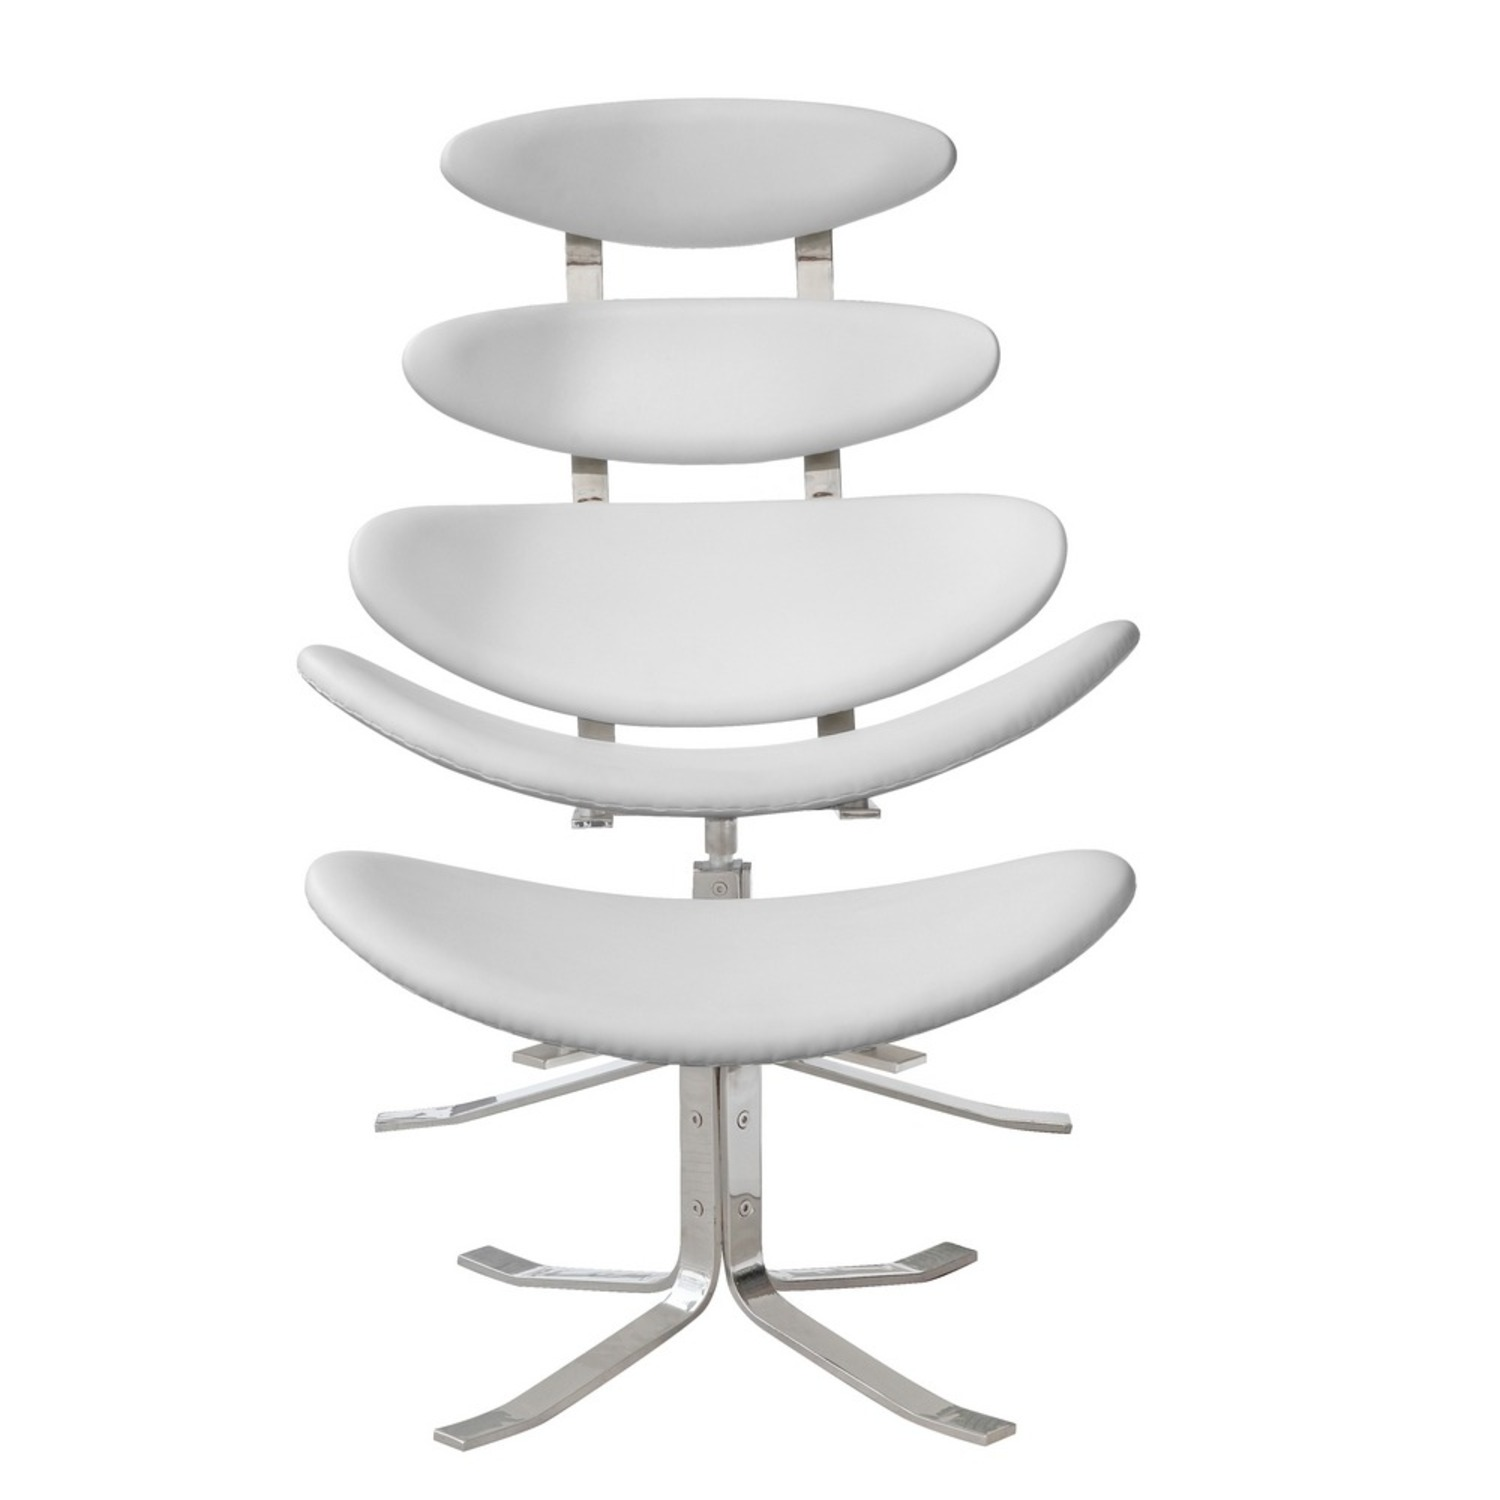 Chair & Ottoman In White Leather Sculptured Form - image-5